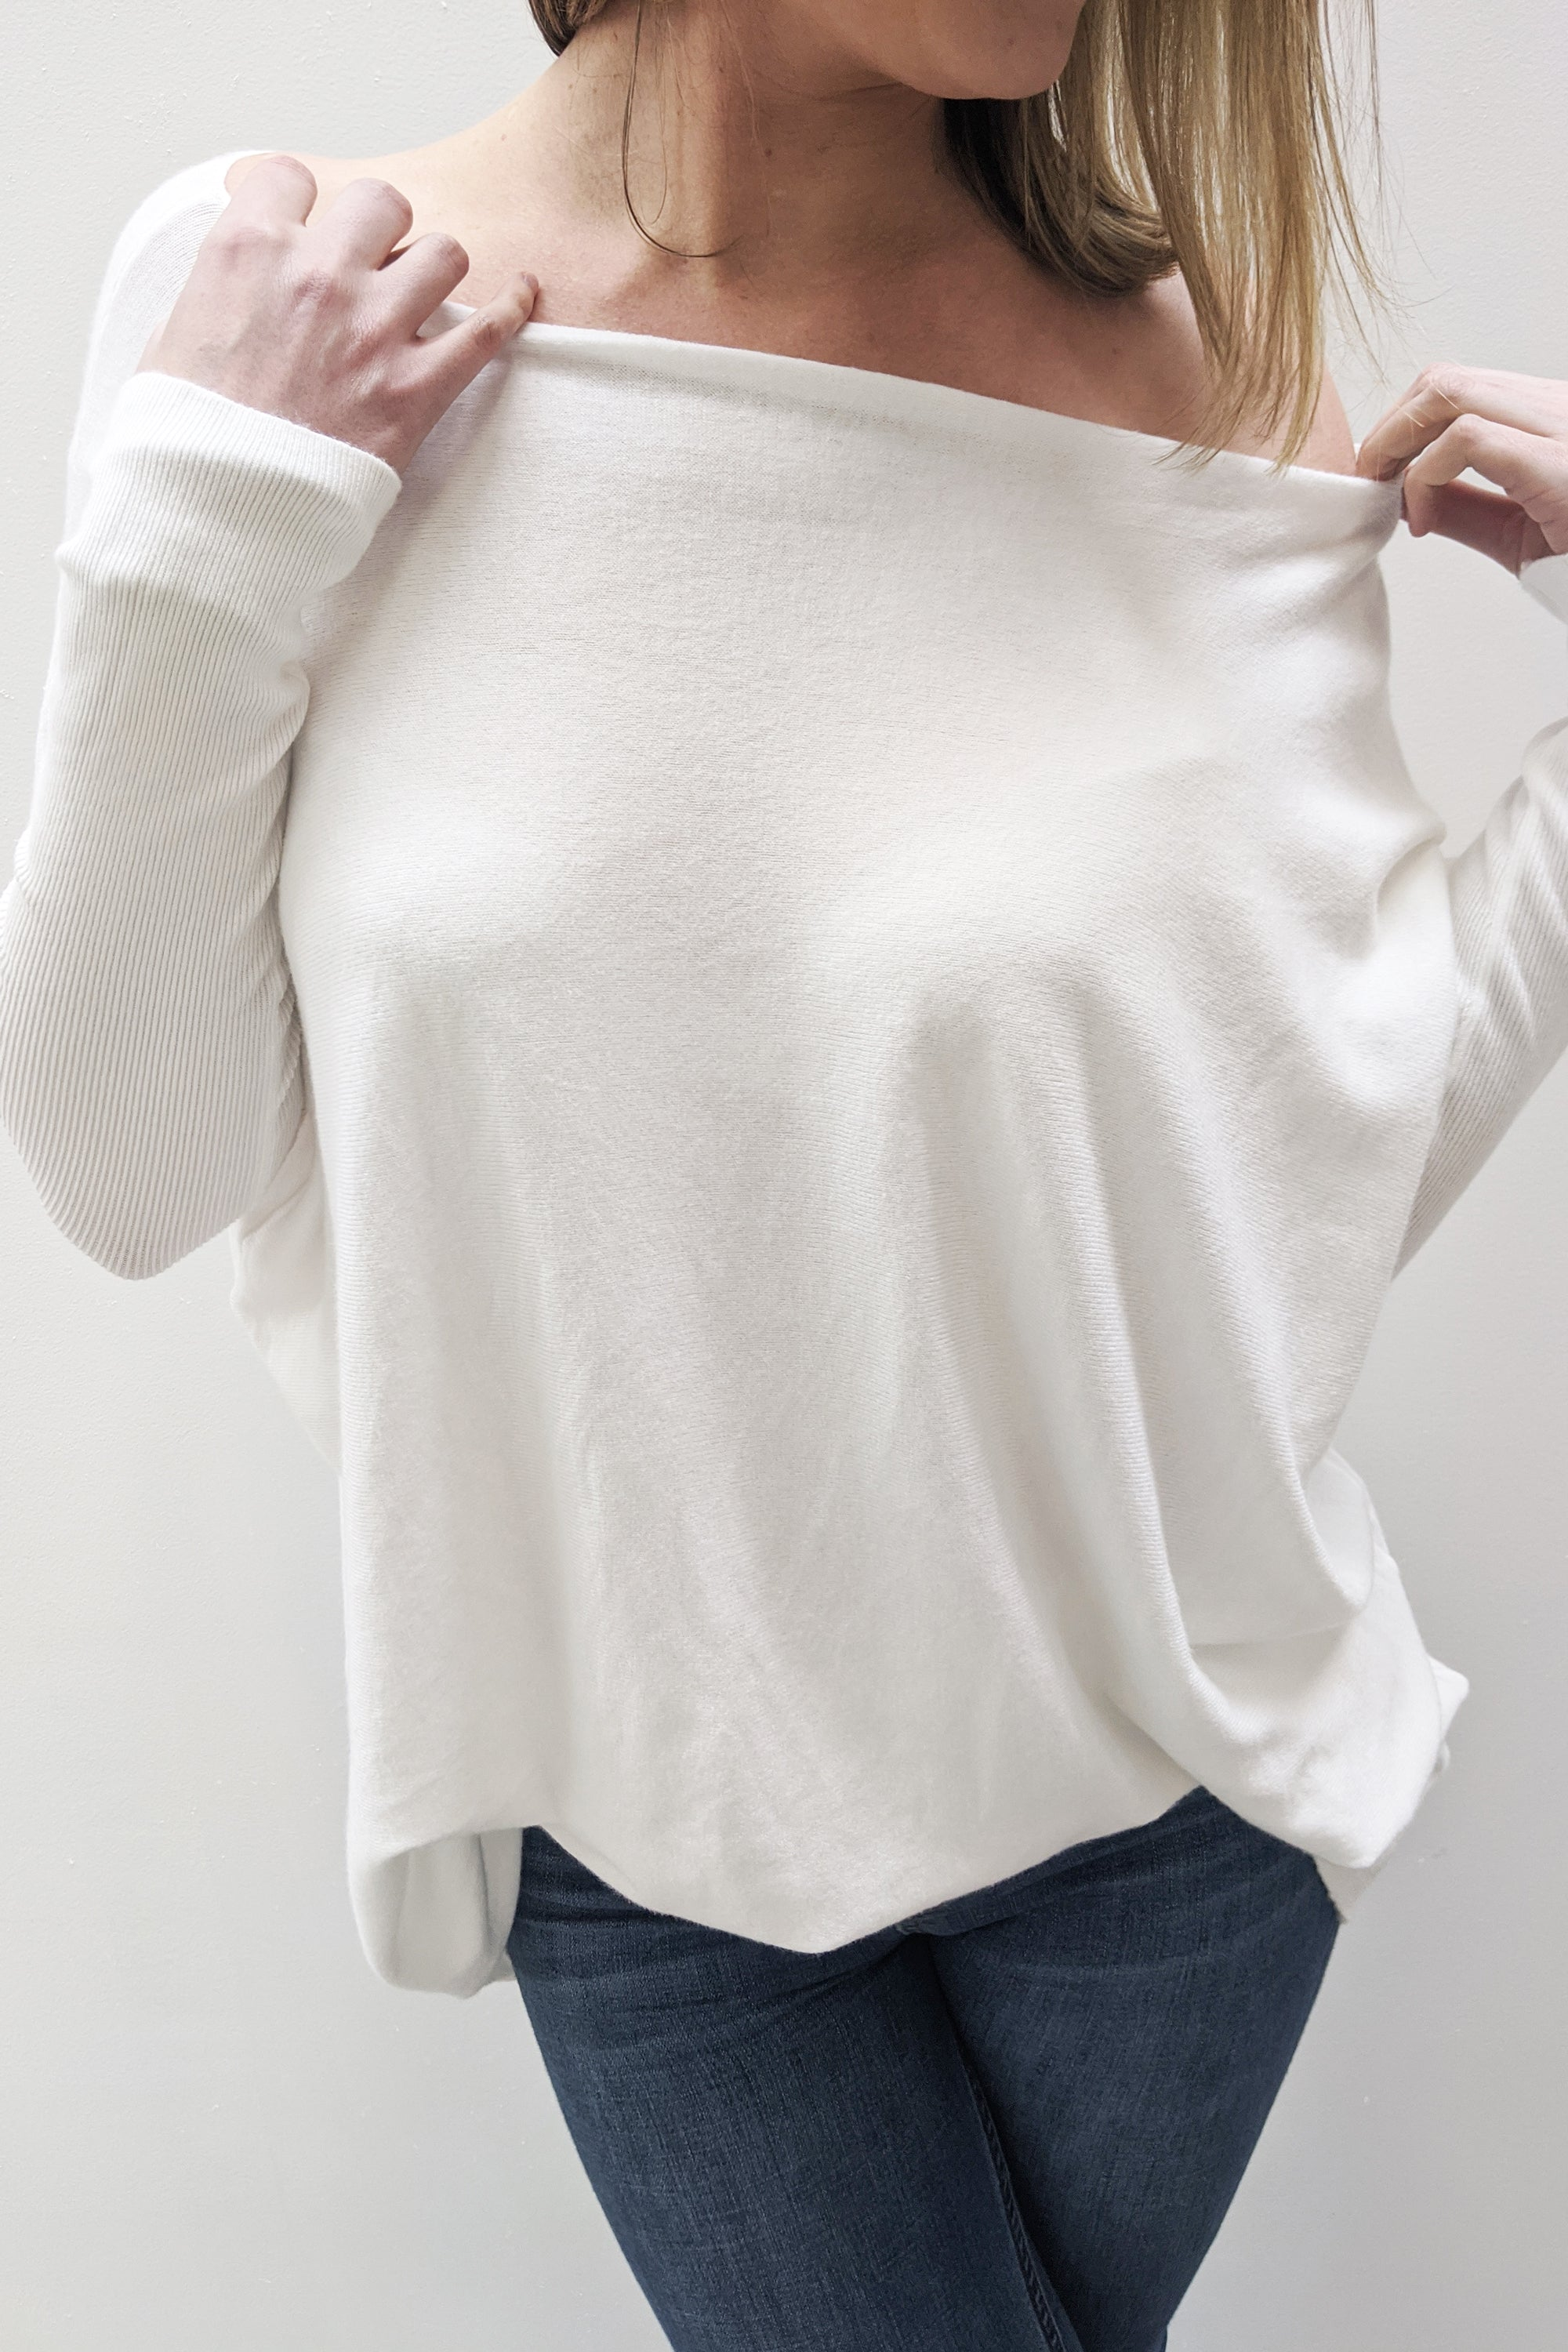 Super Soft Boxy Knit - White